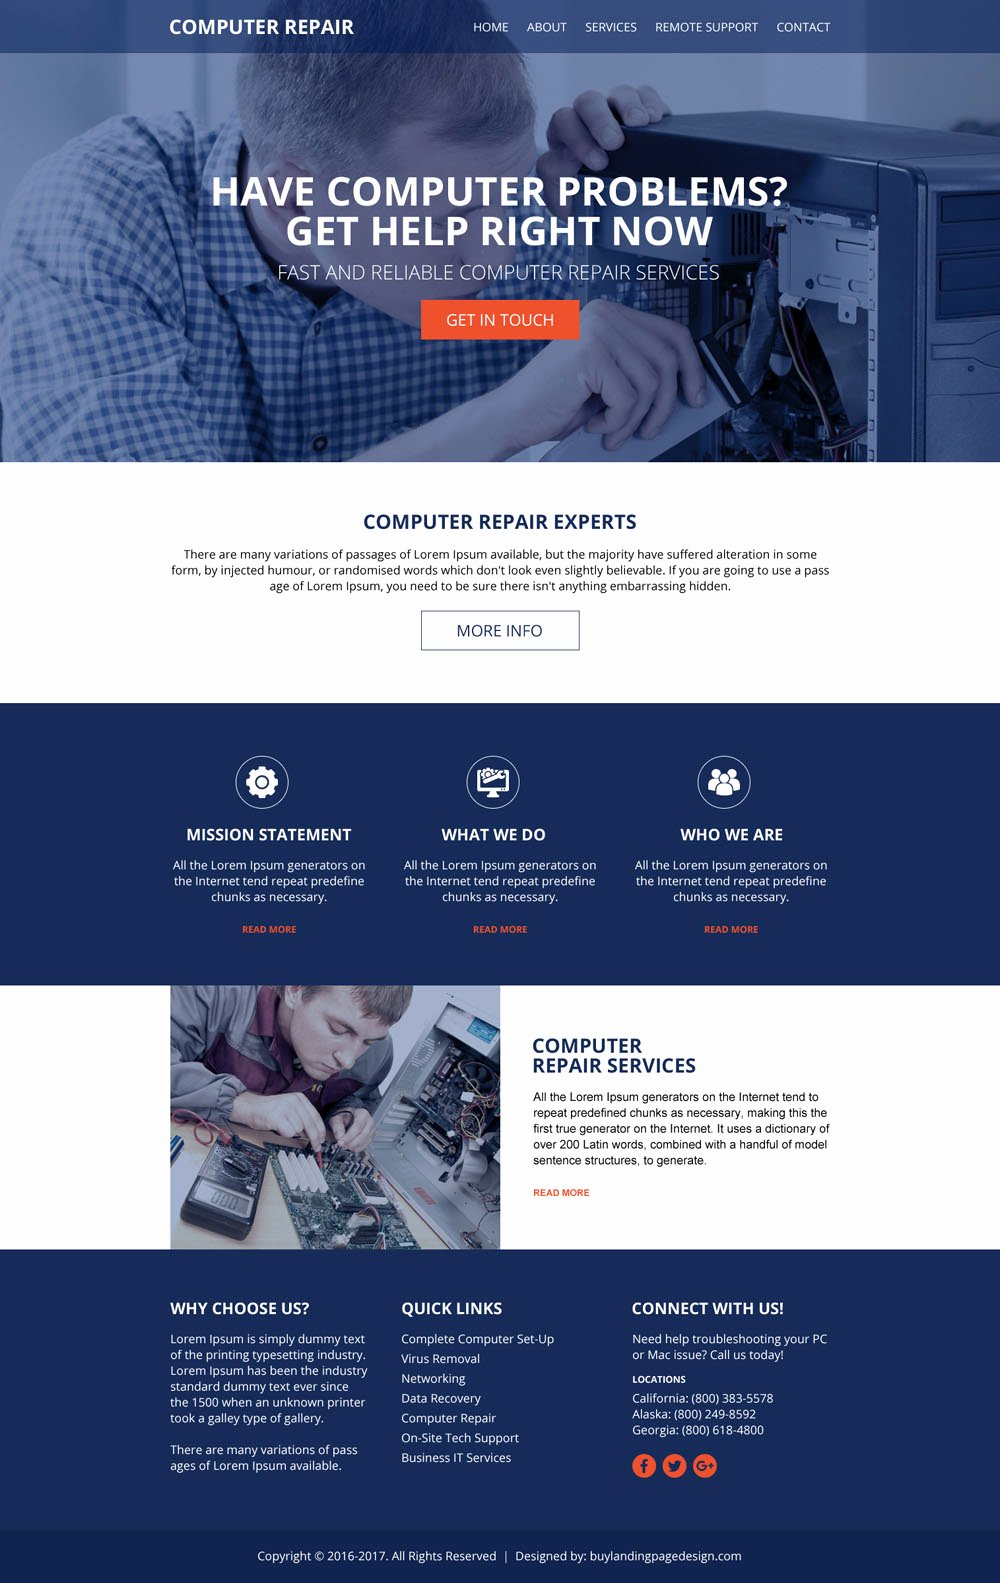 Computer Repair Website Template Lovely Puter Repair Services Website Design Template